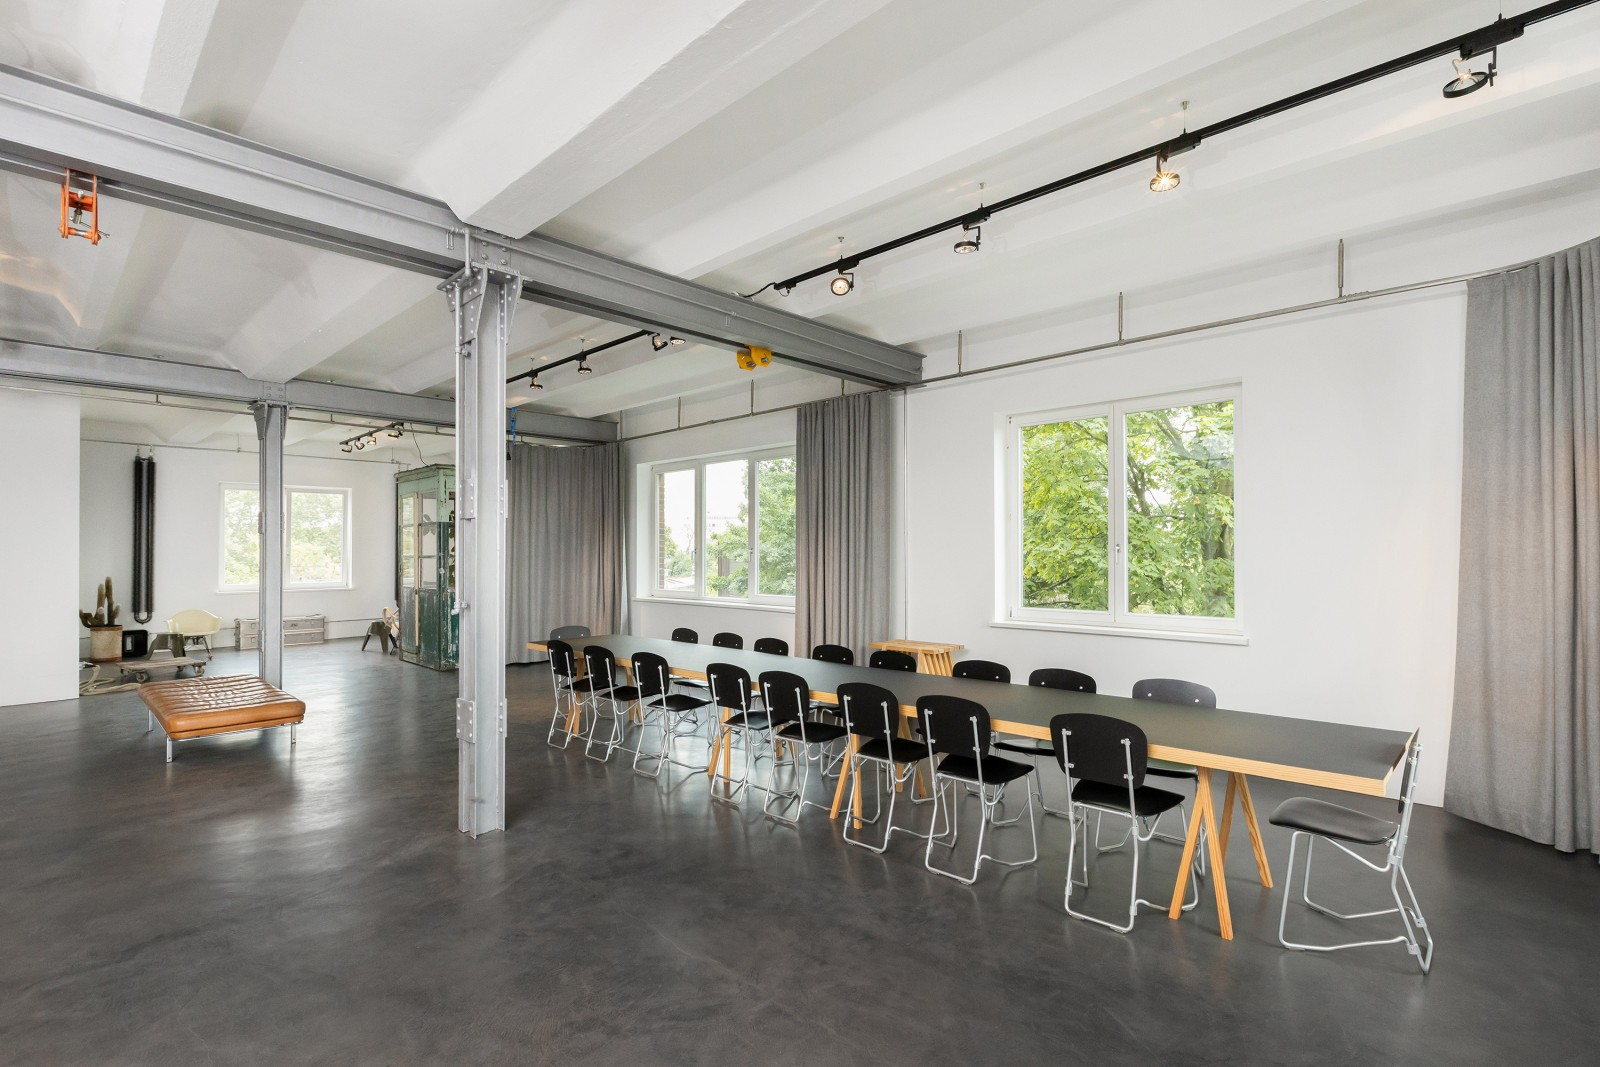 Innenarchitektur Office Eventlocation Weststadt Darmstadt 5